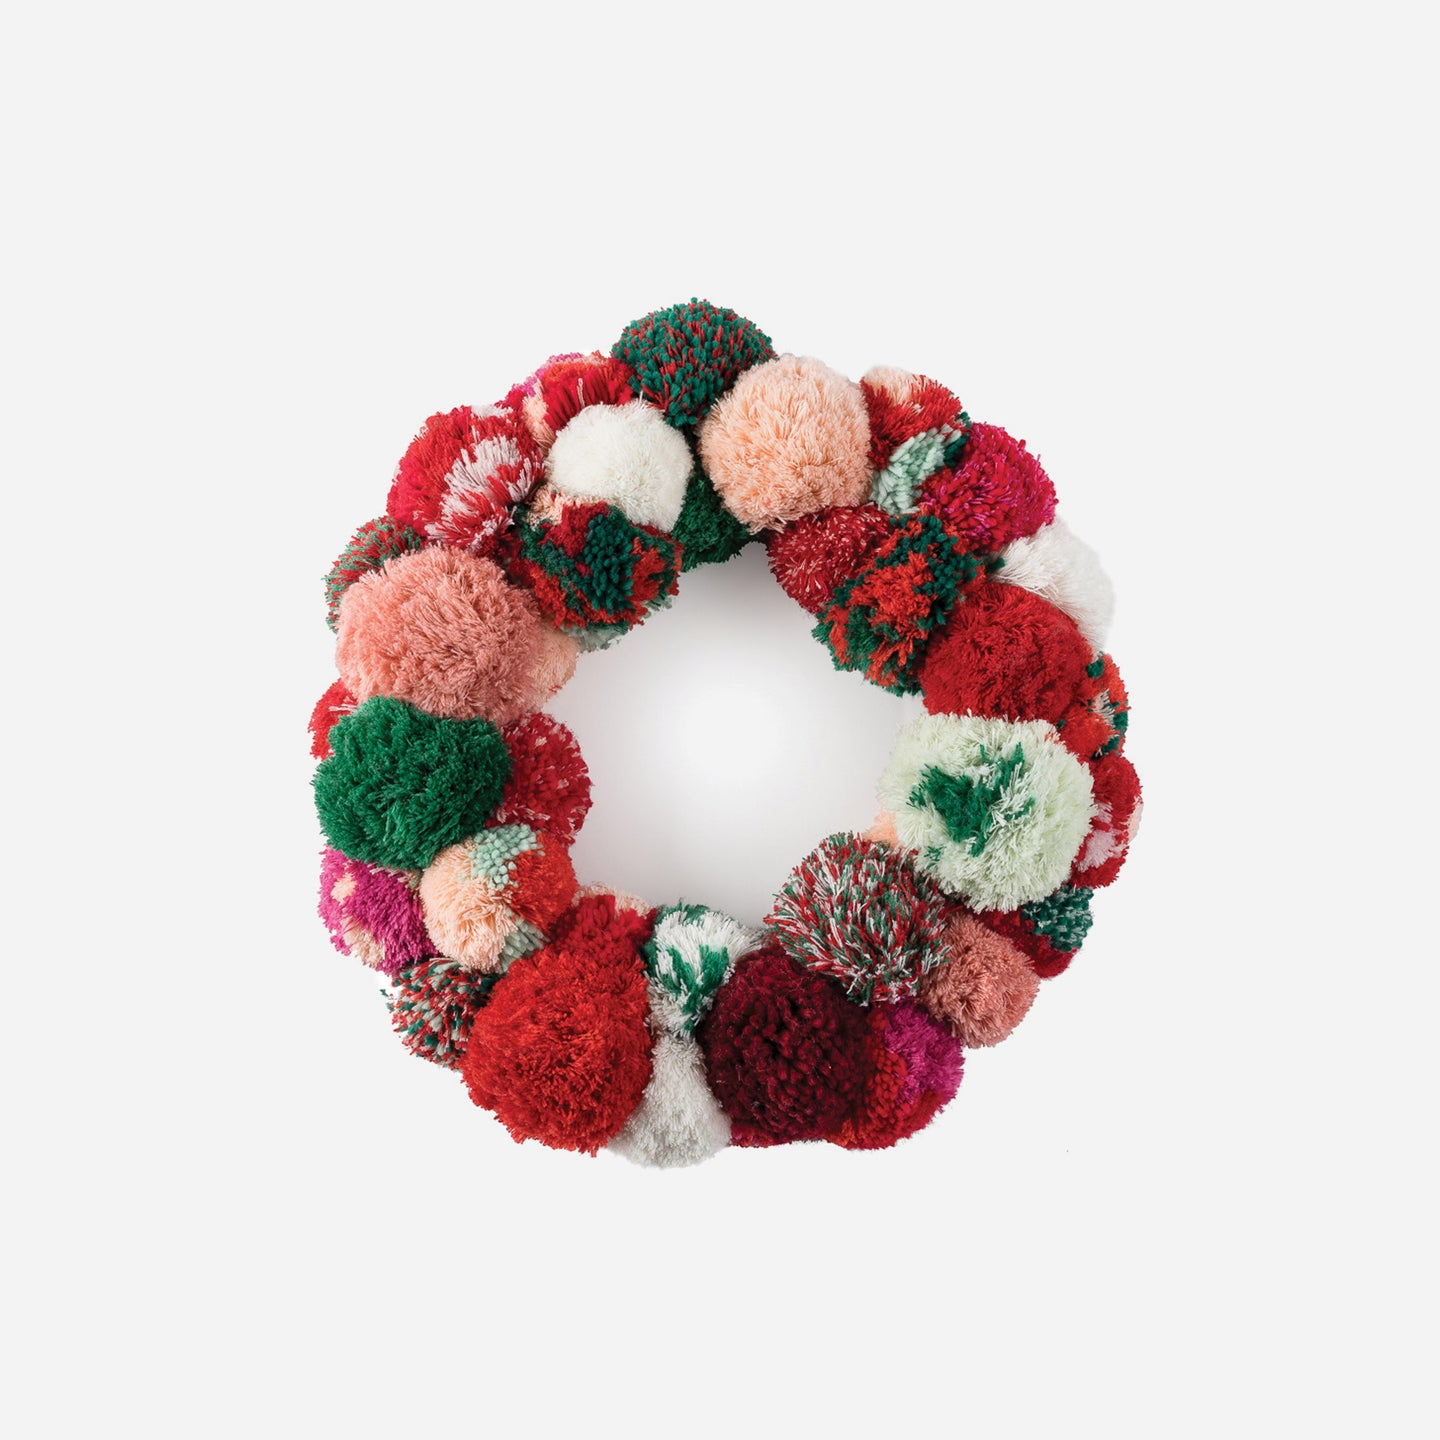 Pom Wreath Repurposed Holiday